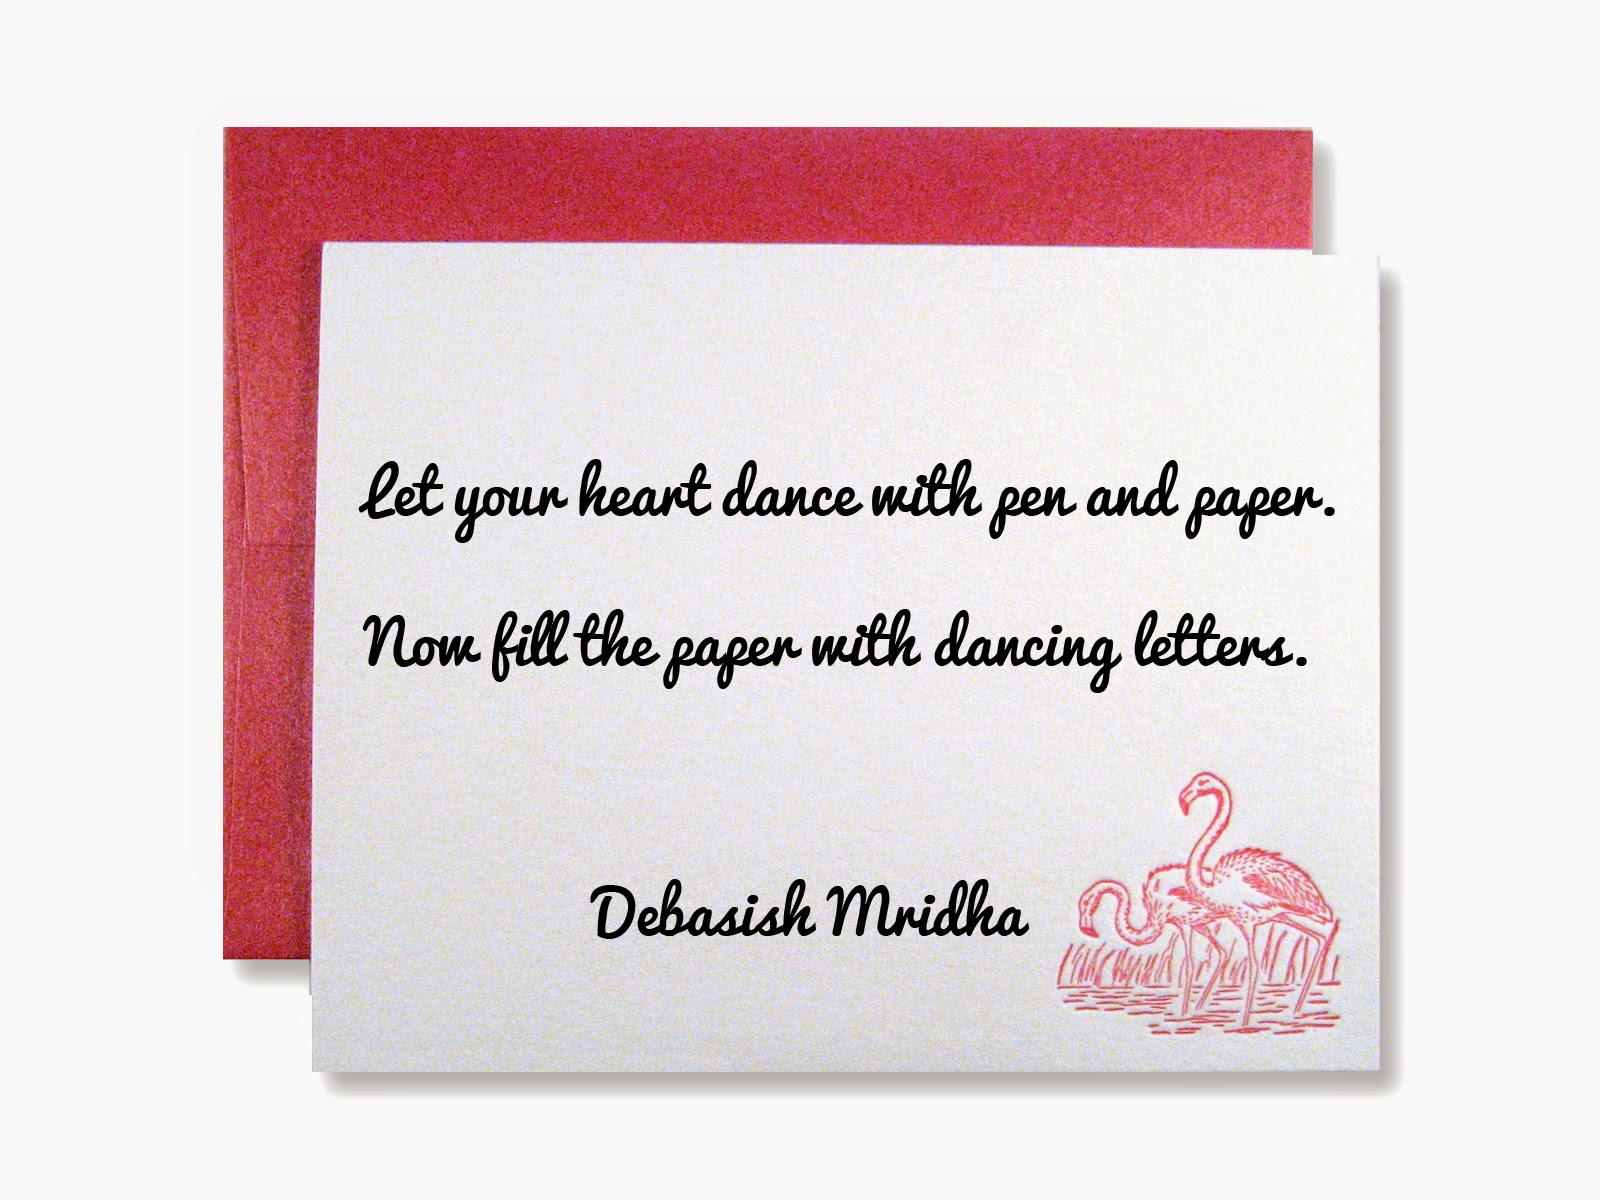 Let your heart dance with pen and paper. Now fill the paper with dancing letters. Debasish Mridha